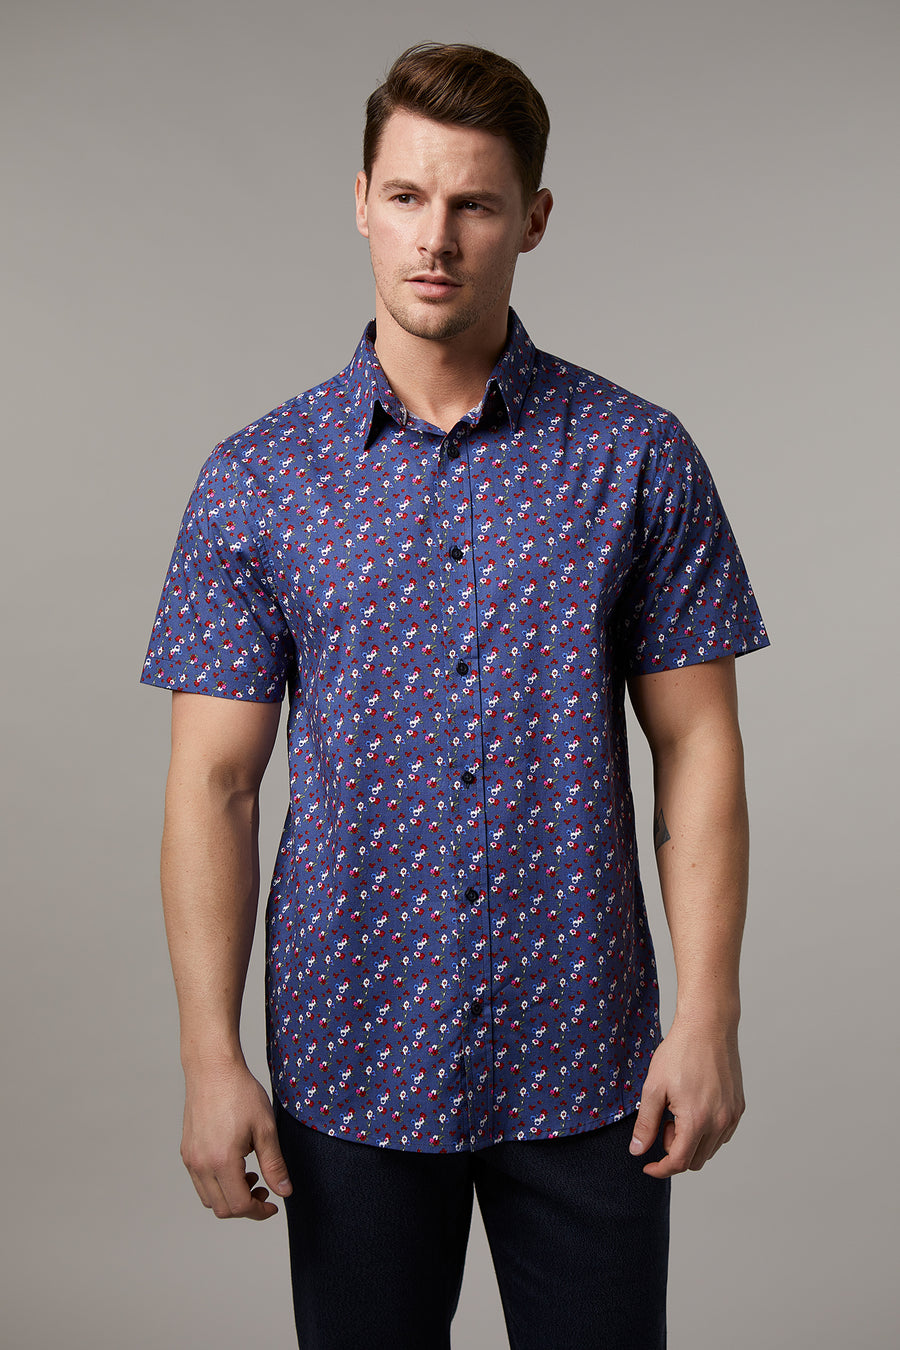 Andrew Cotton Stretch Small Floral Shirt